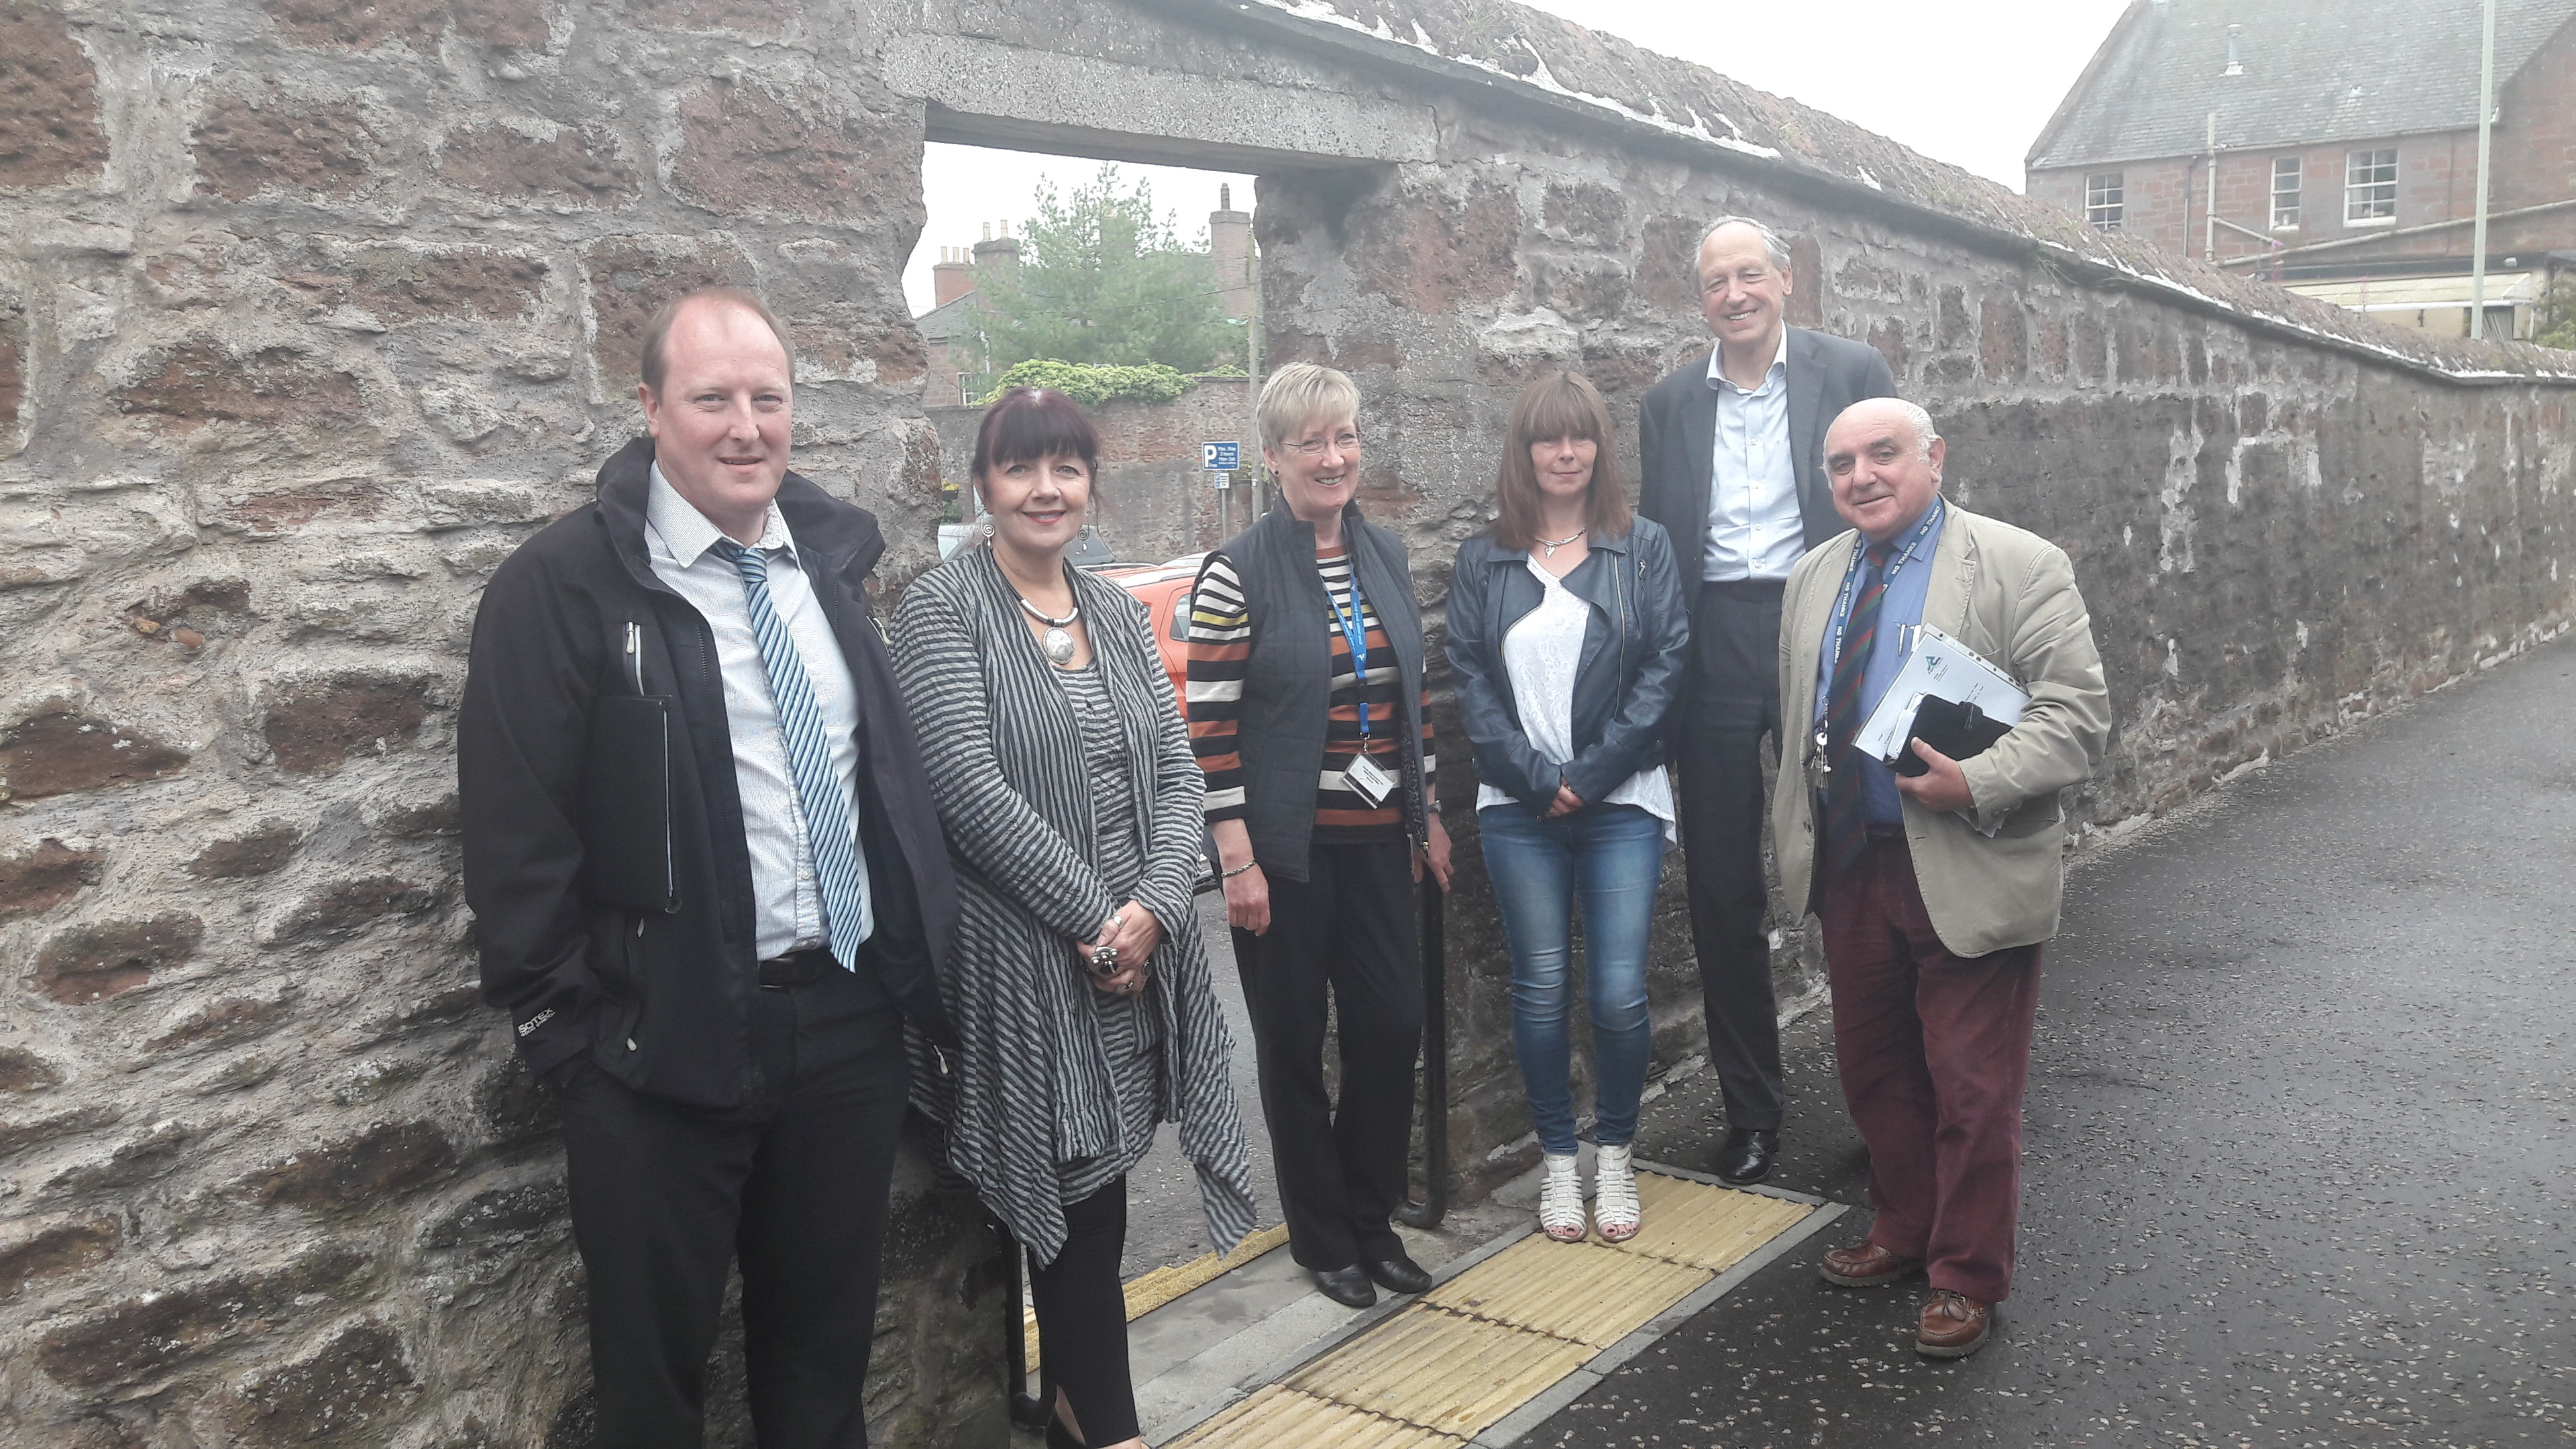 CARS steering group members Paul Fretwell, Councillor Julie Bell, project officer Karen West, Elaine Findlay, Cllr Angus Macmillan Douglas and Cllr Ronnie Proctor at St Colme's Close